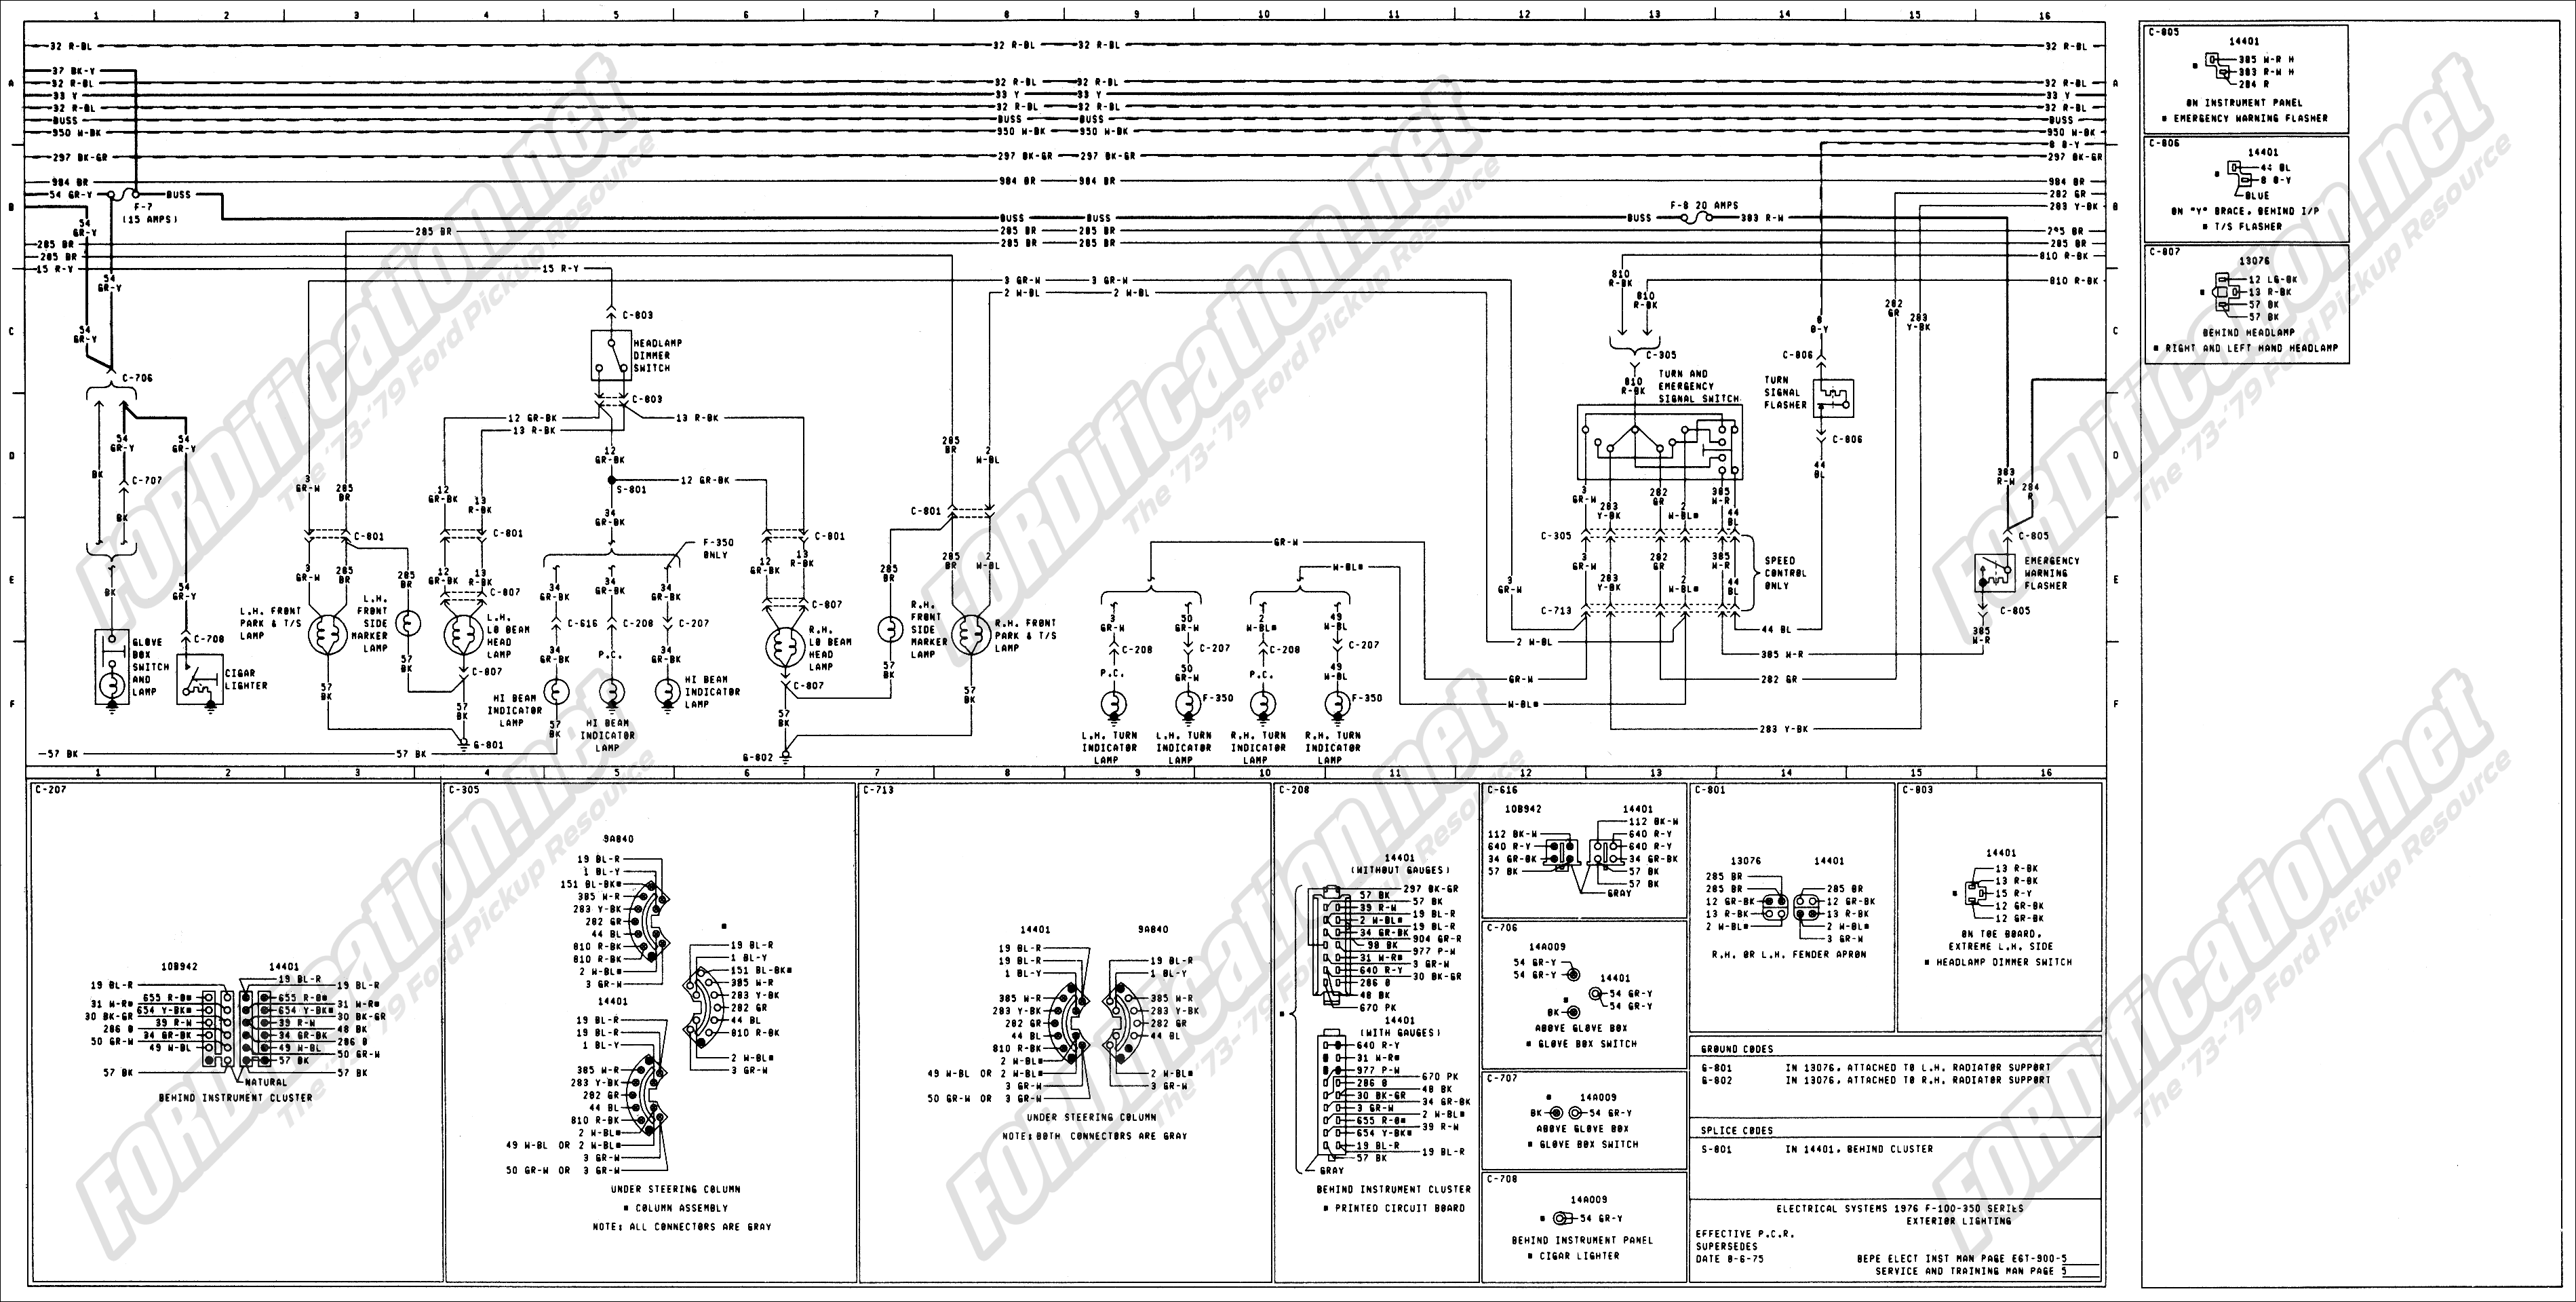 09 F250 Headlight Wire Diagram Simple Guide About Wiring 2009 Jetta Headlamp Schematic 1973 1979 Ford Truck Diagrams Schematics Escape